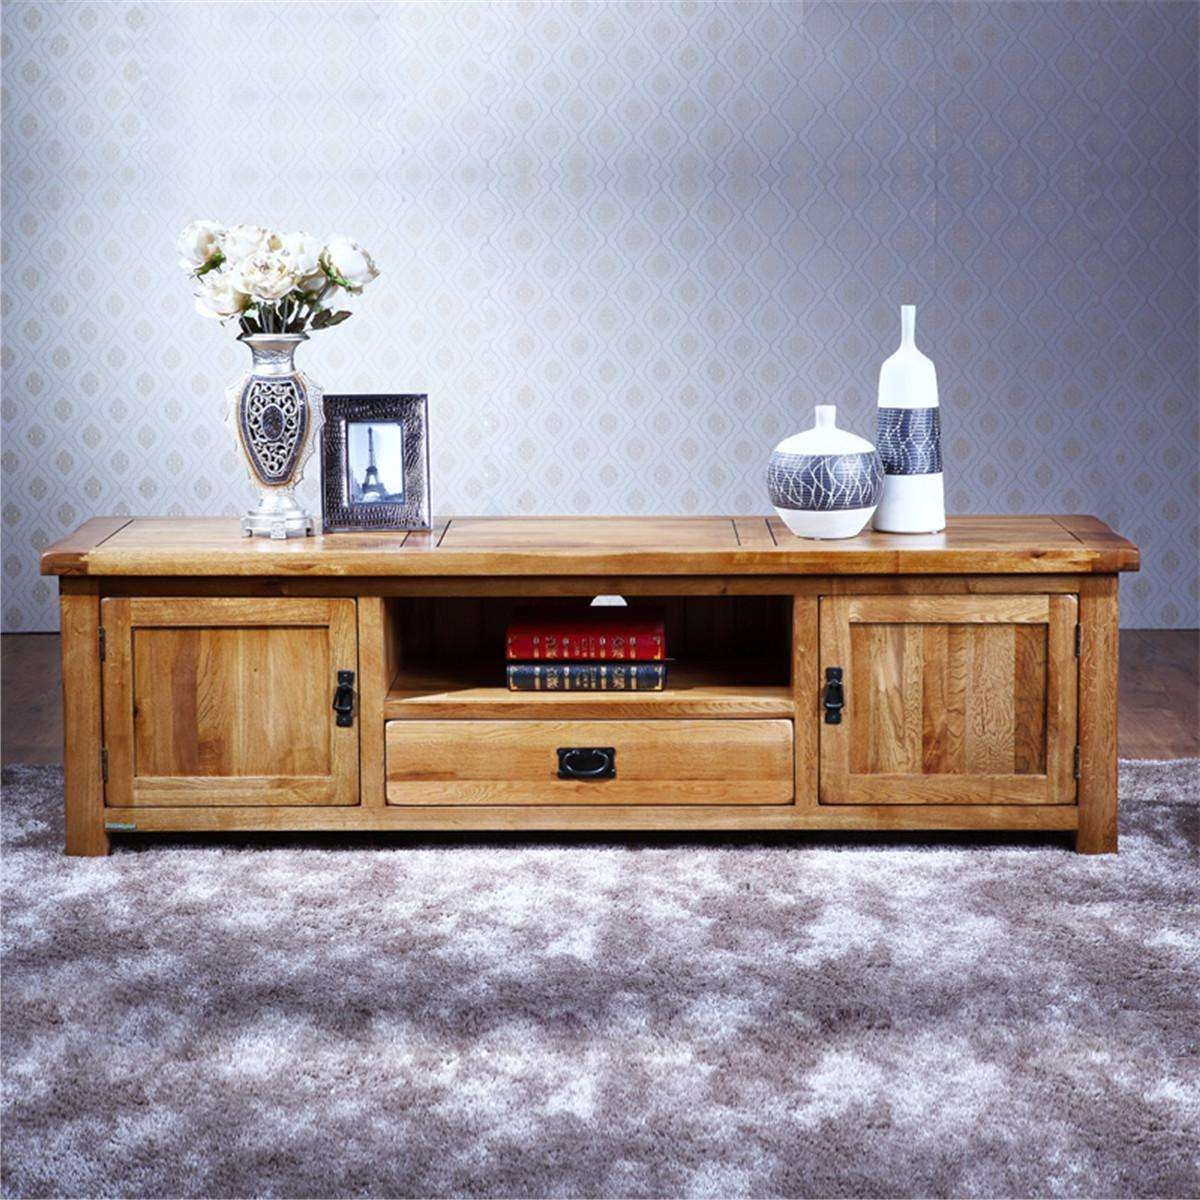 Pure Solid Wood Tv Stand Oak Media Console Inspirations Decoration With Regard To Hardwood Tv Stands (View 7 of 15)